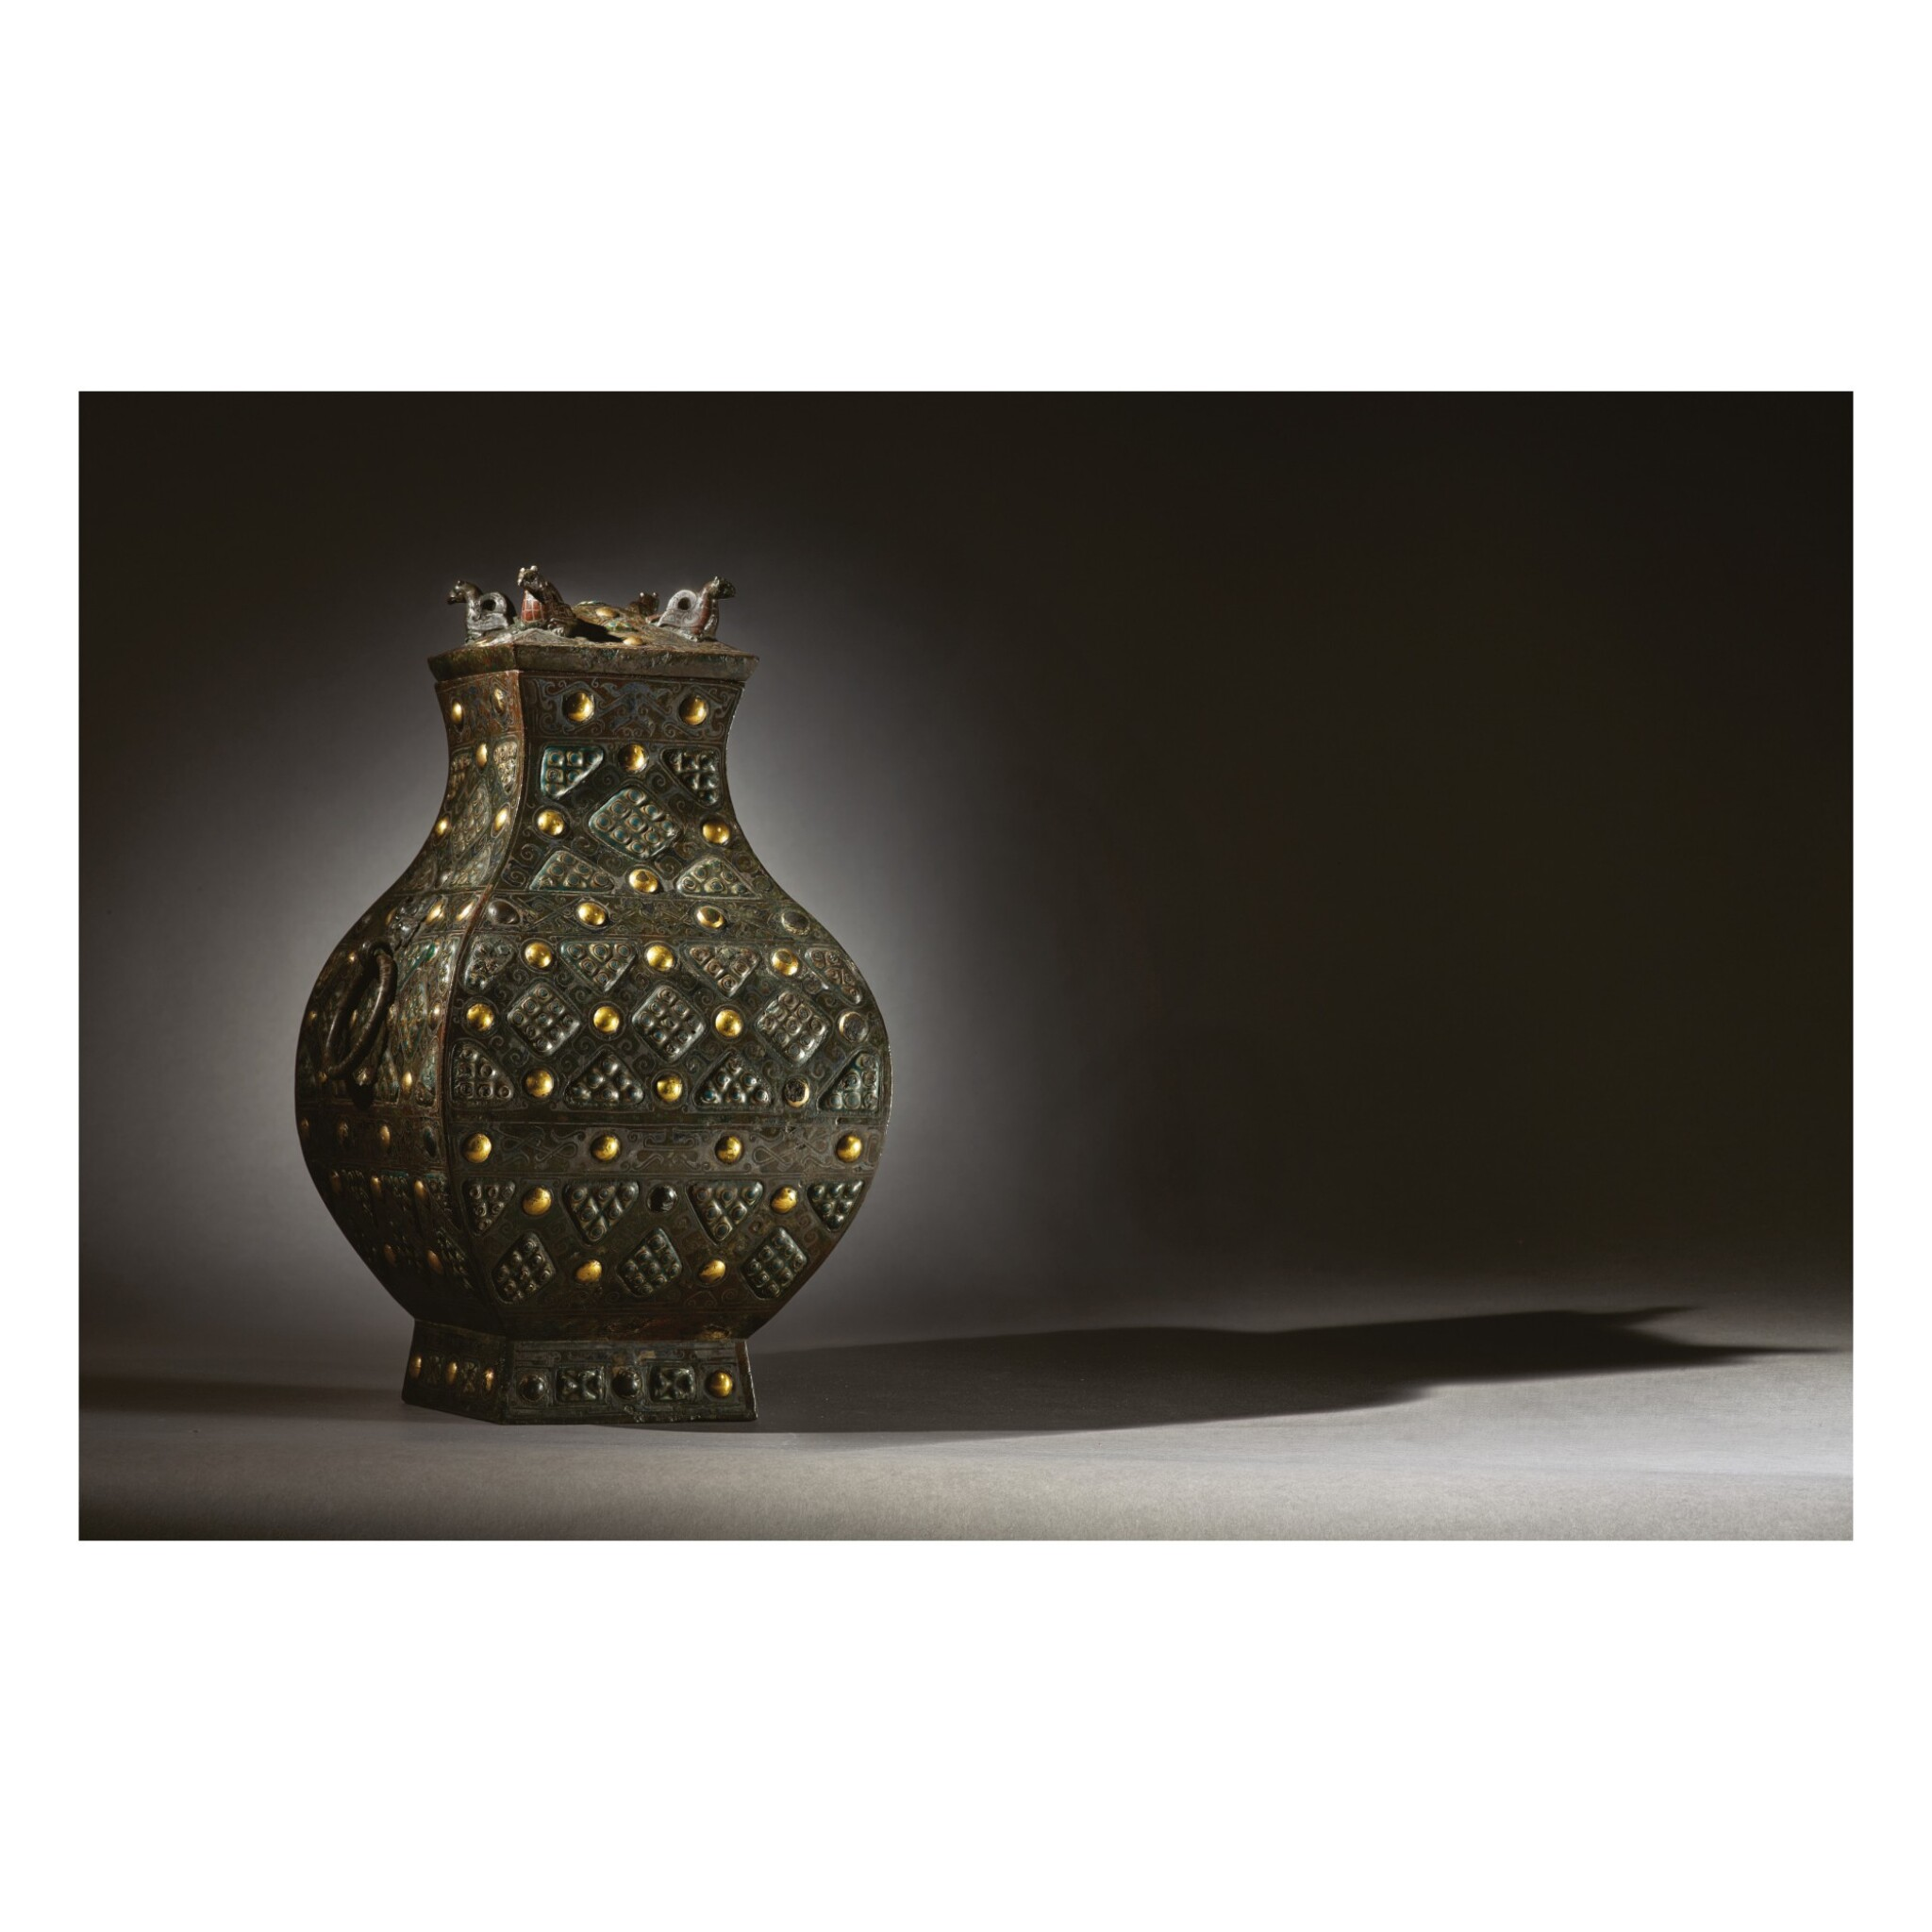 View full screen - View 1 of Lot 578. AN EXCEPTIONALLY RARE AND IMPORTANT GOLD, SILVER AND GLASS-EMBELLISHED BRONZE VESSEL (FANG HU),  WARRING STATES PERIOD, 4TH / 3RD CENTURY BC.